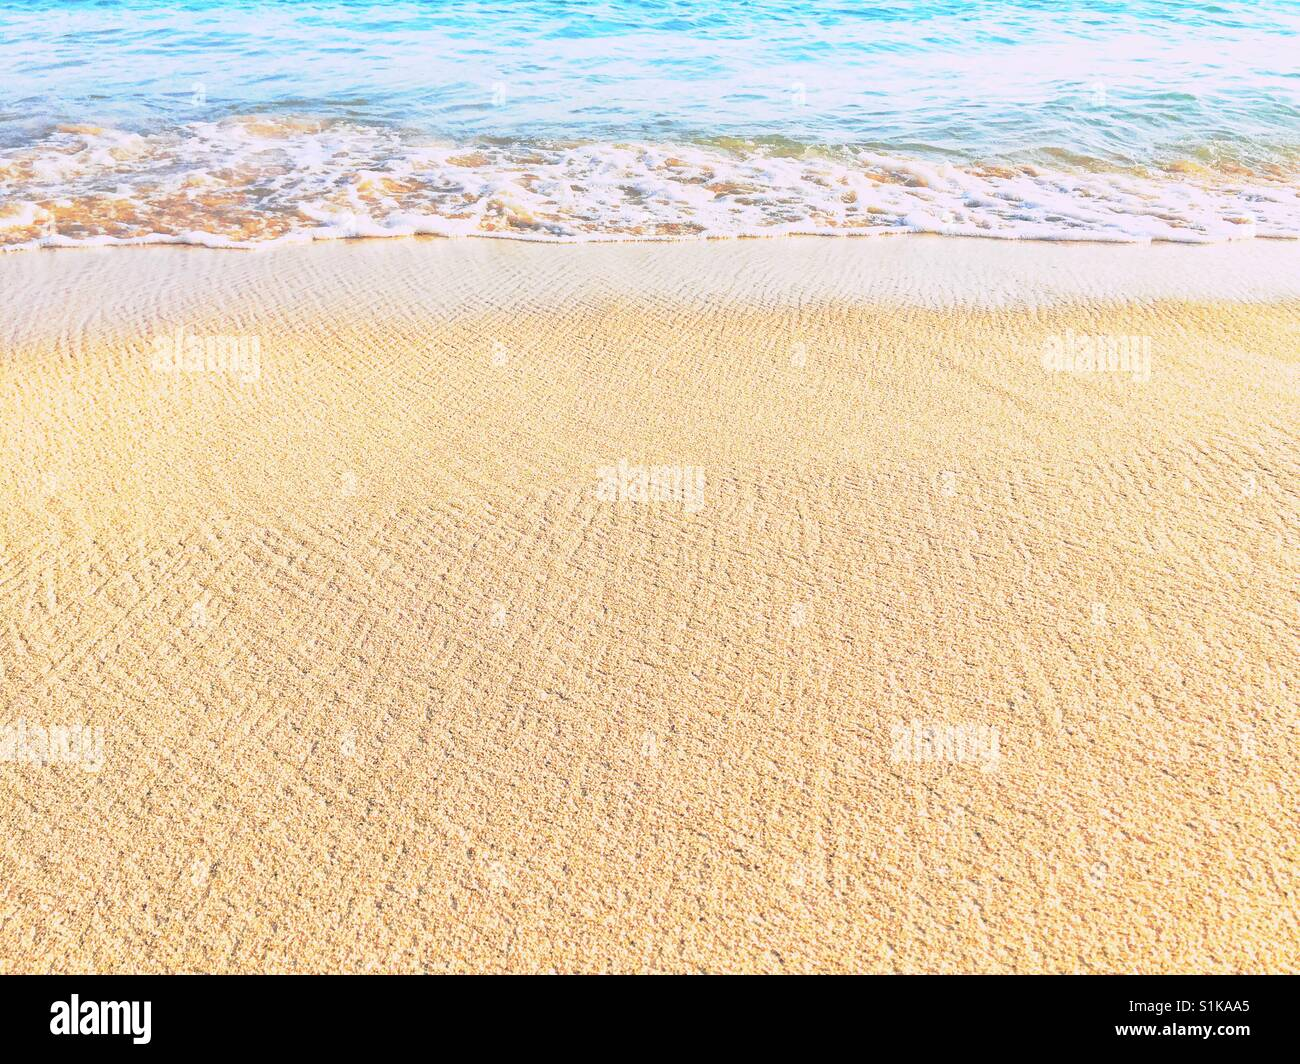 Texture patterns on the beach. Low angle perspective of surf on sand - Stock Image